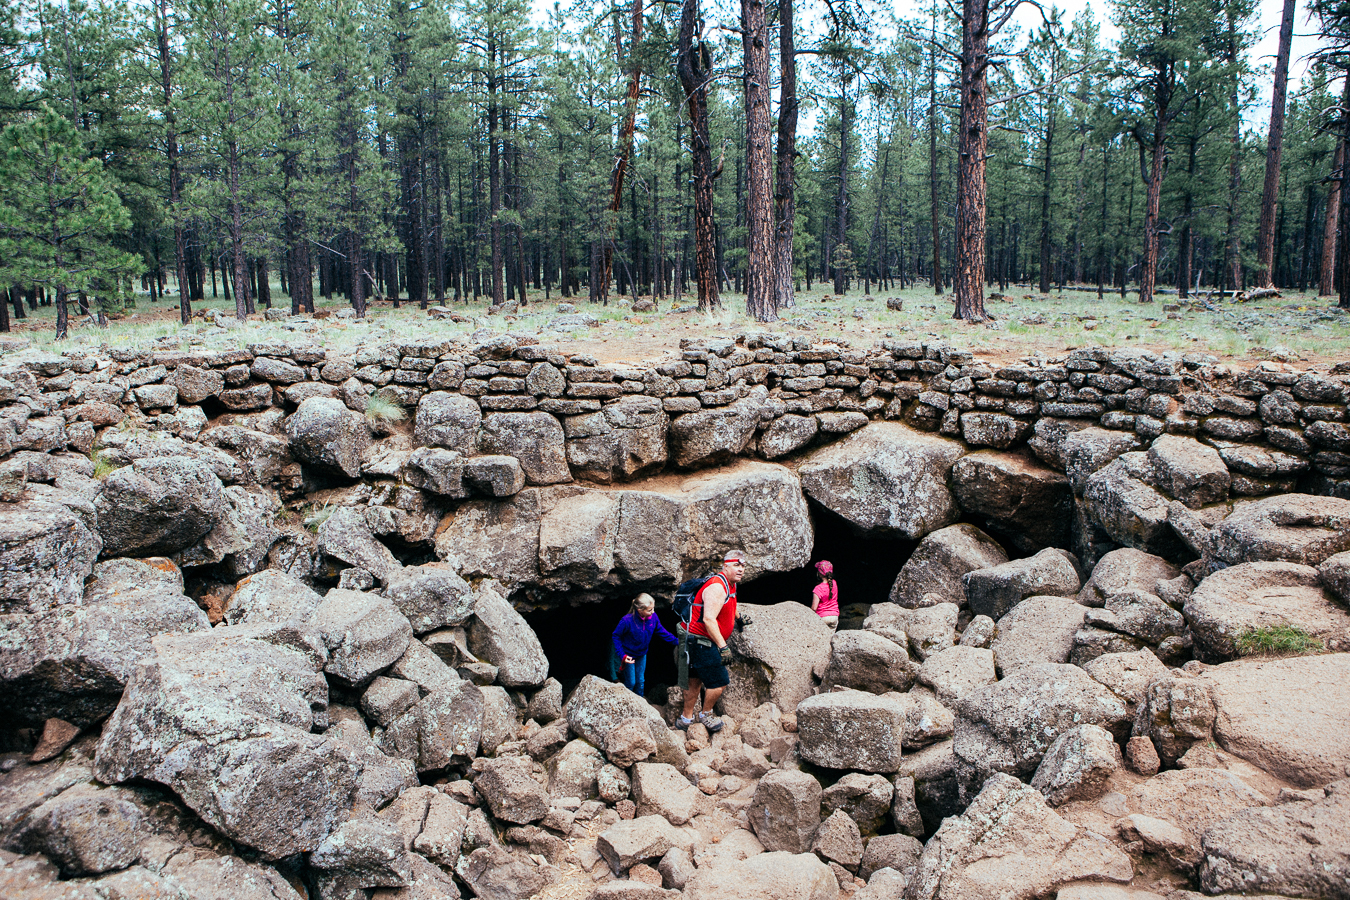 If you know where you're going, out in the middle of the forest is this hole in the ground. It's the entrance to the mile deep Coconino Lava River Cave.